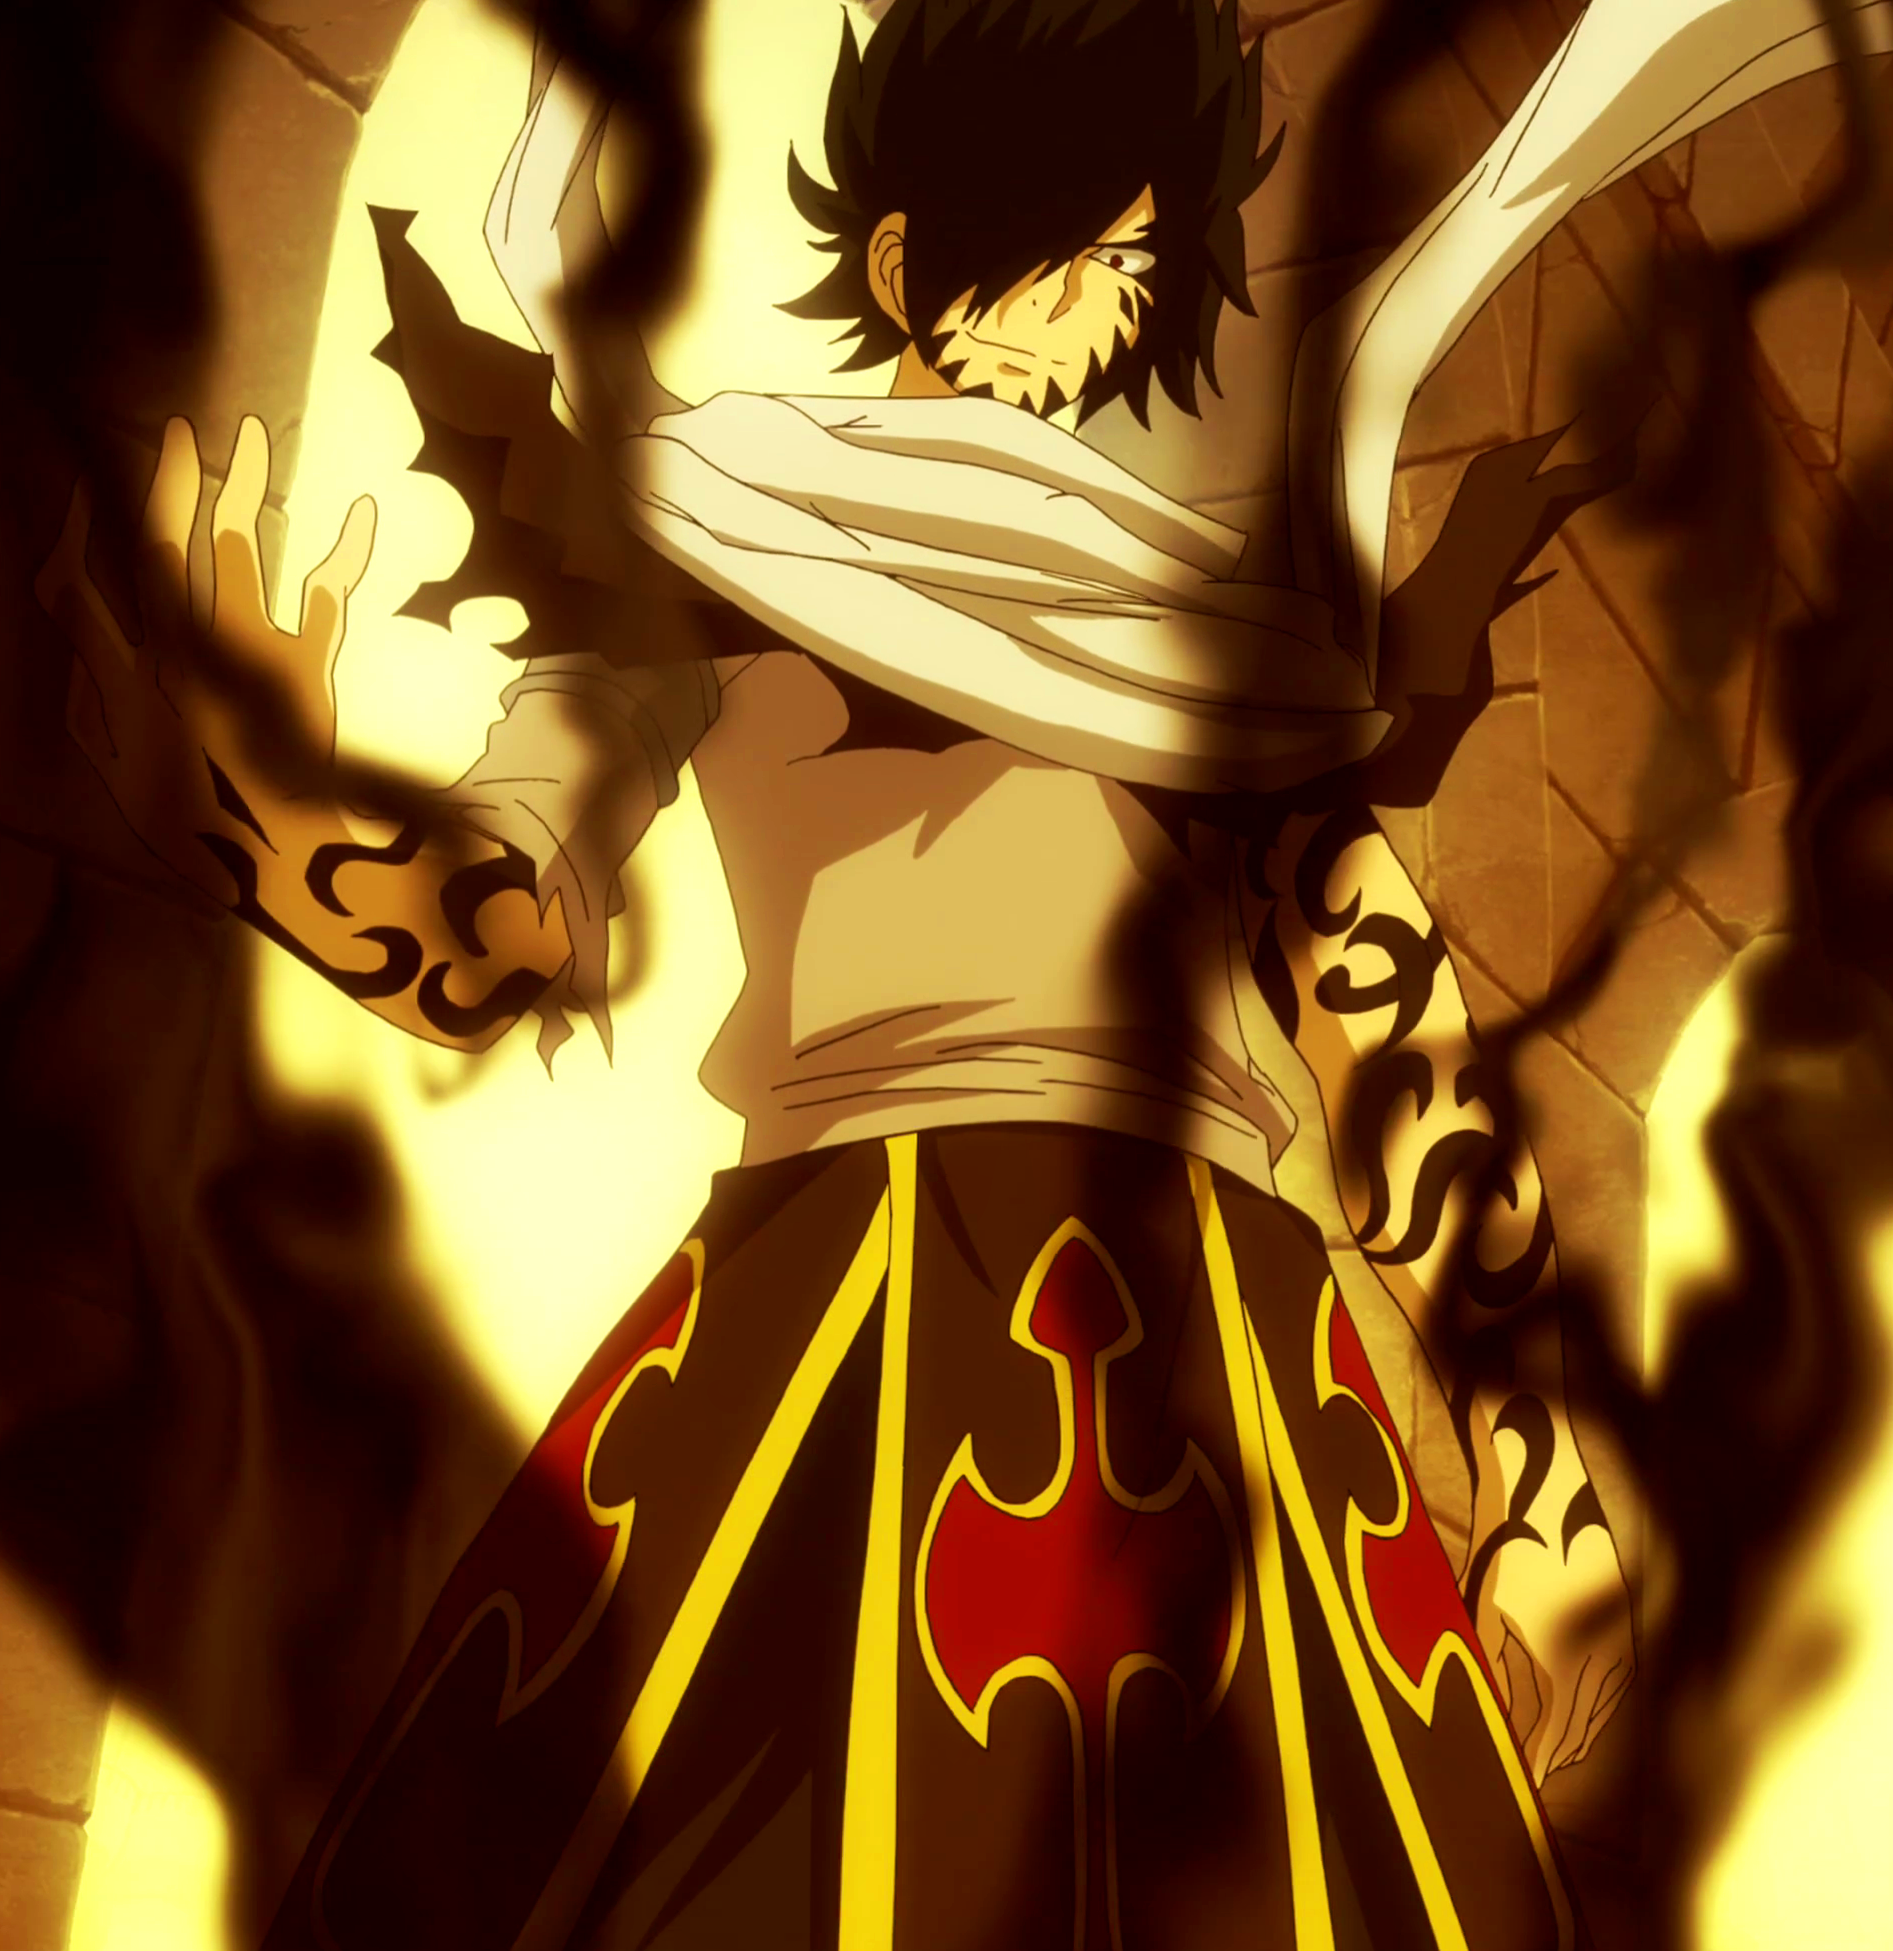 Shadow Dragon Slayer Magic Fairy Tail Wiki The Site For